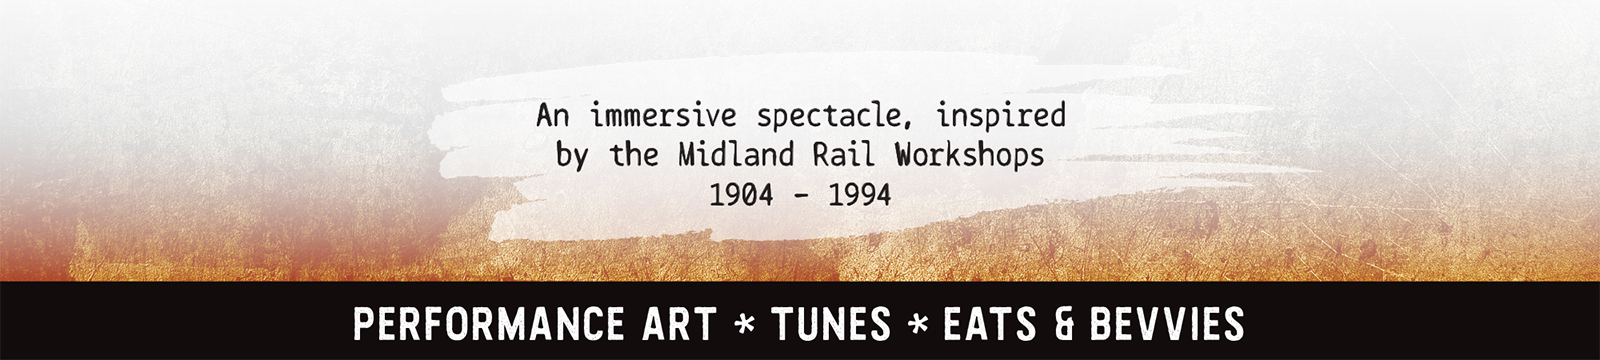 An immersive spectacle, inspired by the midland railway workshops